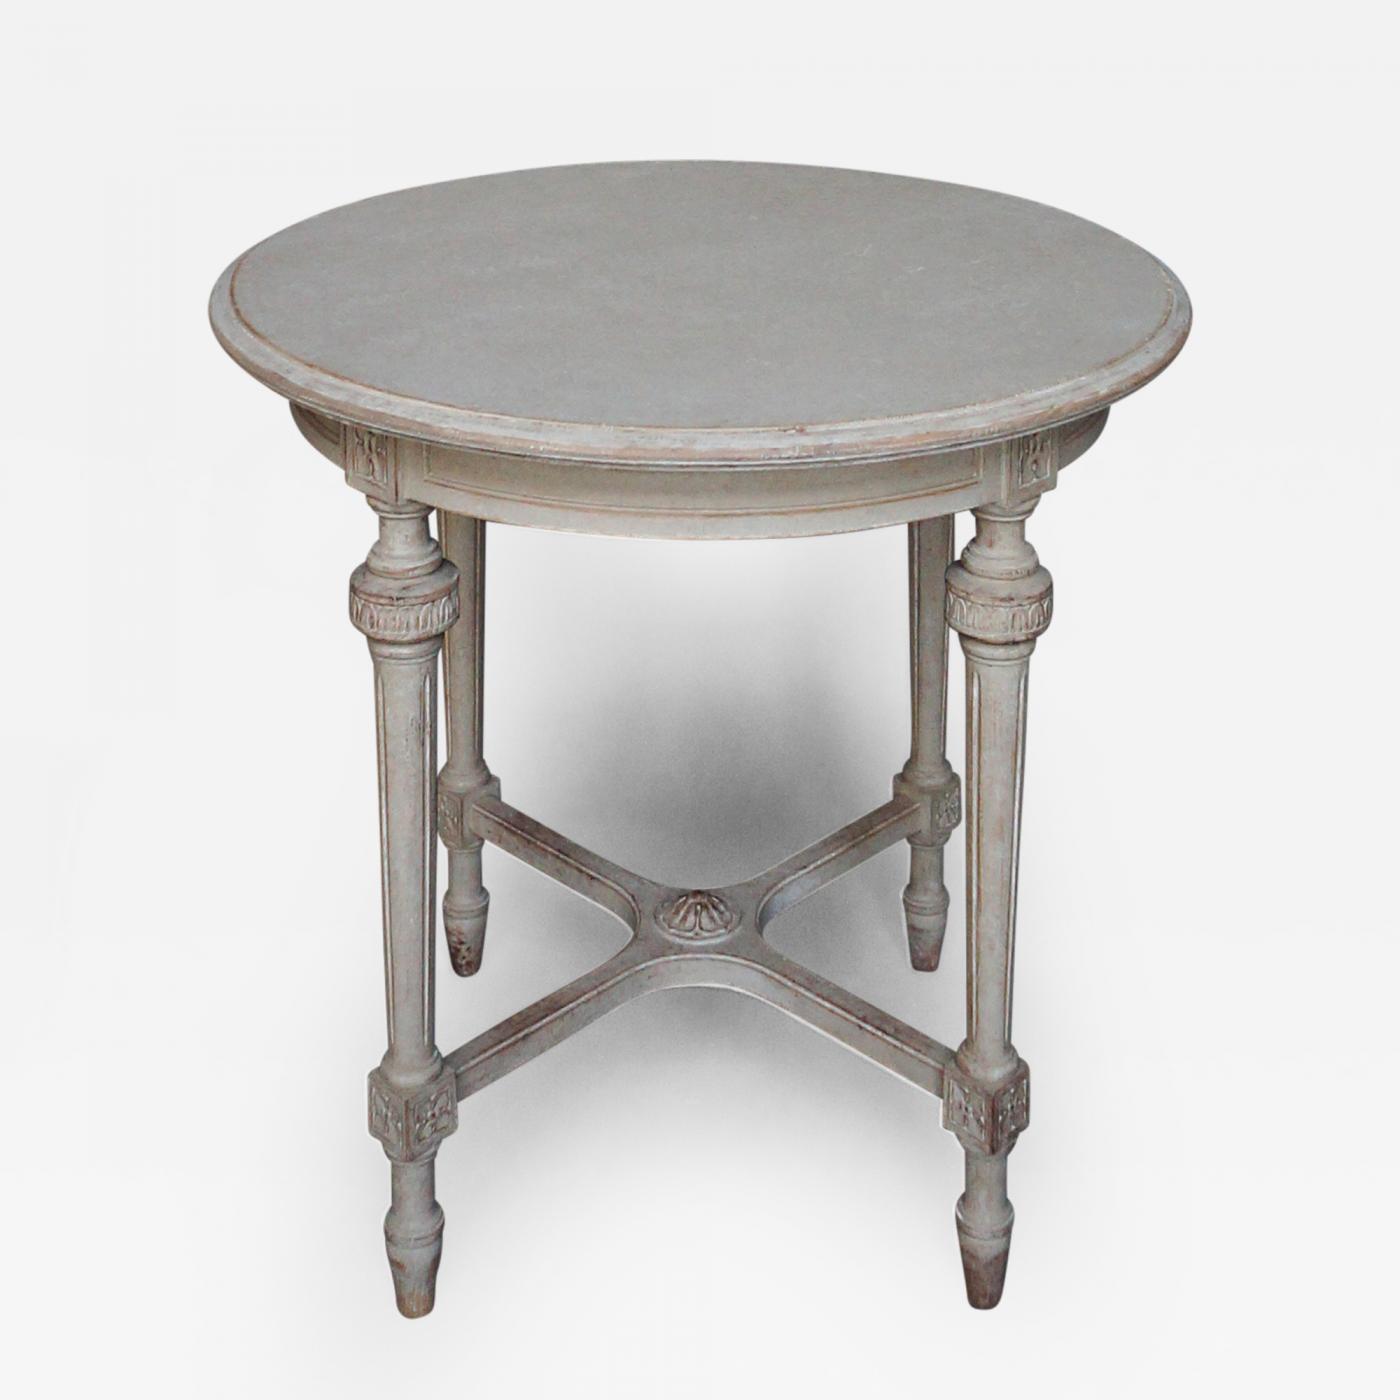 Gentil Listings / Furniture / Tables / Painted Tables · Round Swedish Side Table